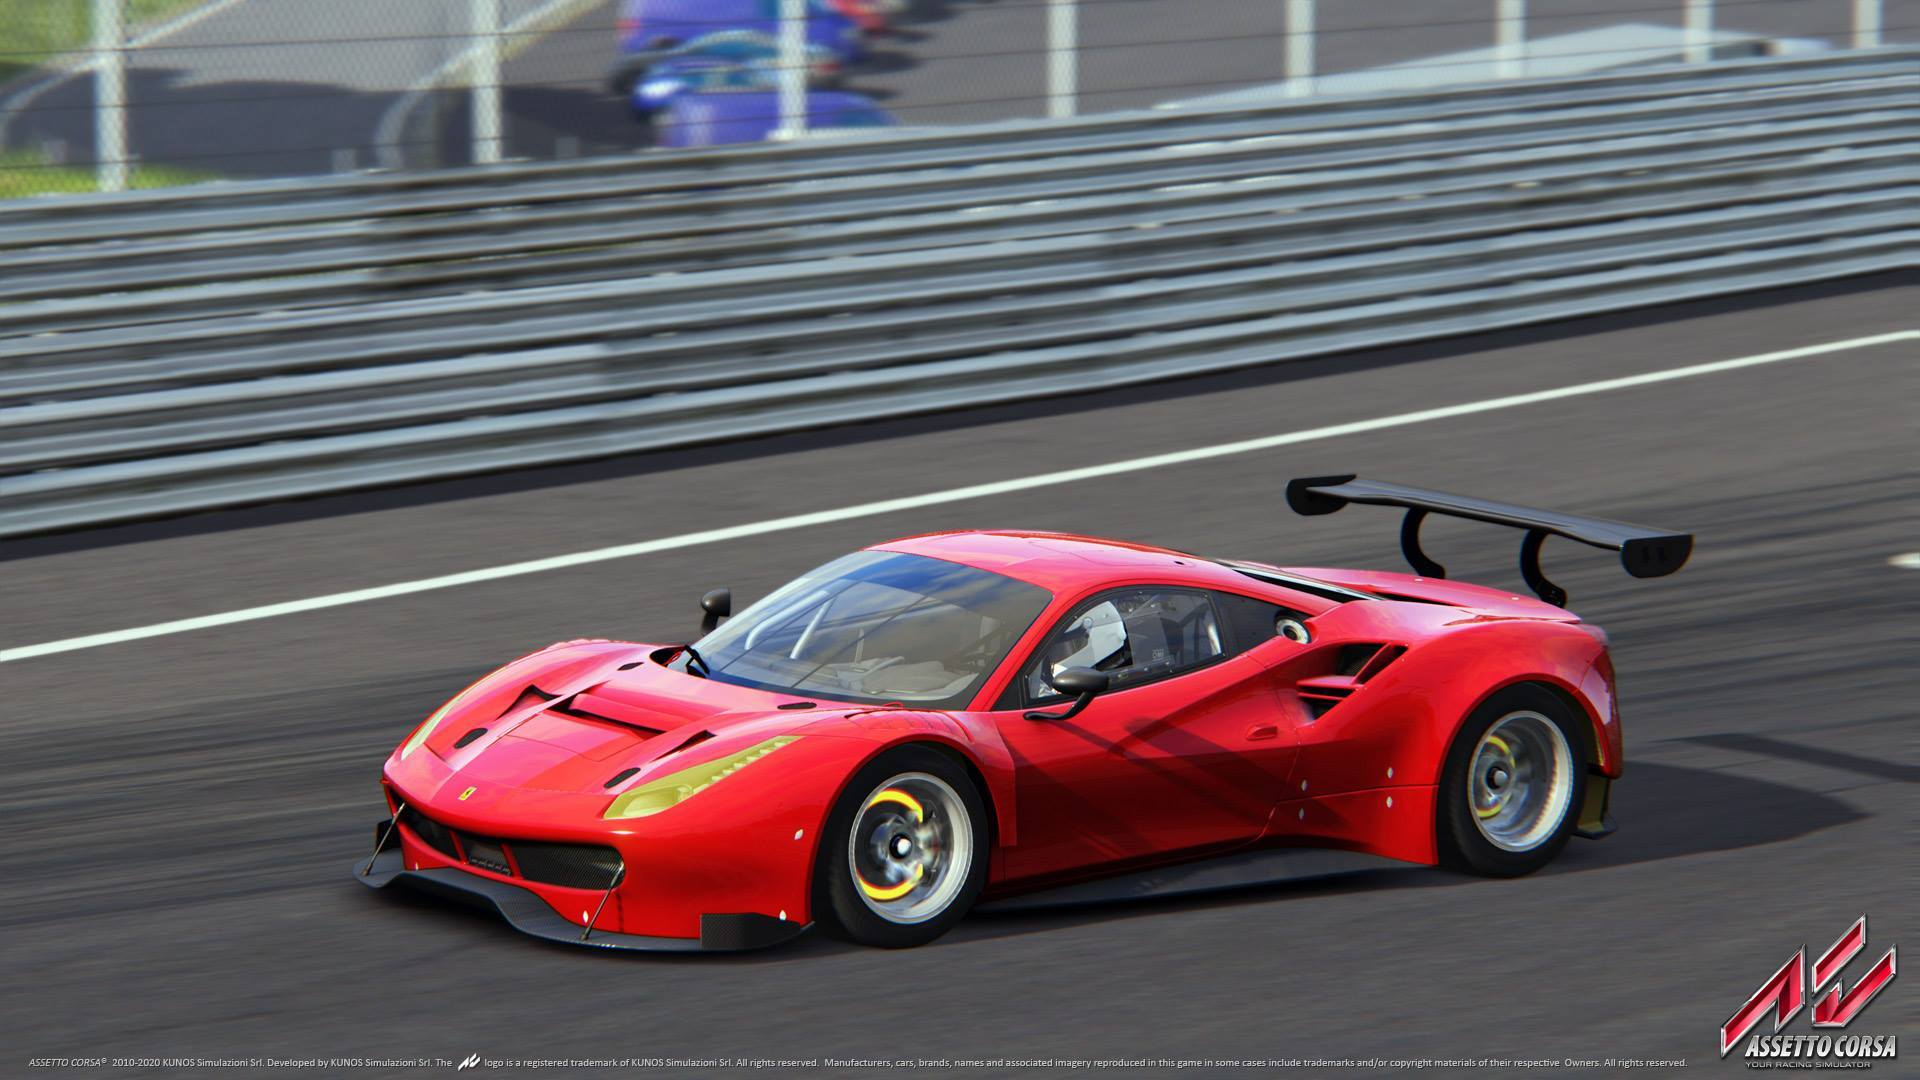 kunos confirms the ferrari 488 gt3 for assetto corsa 39 s red pack. Black Bedroom Furniture Sets. Home Design Ideas